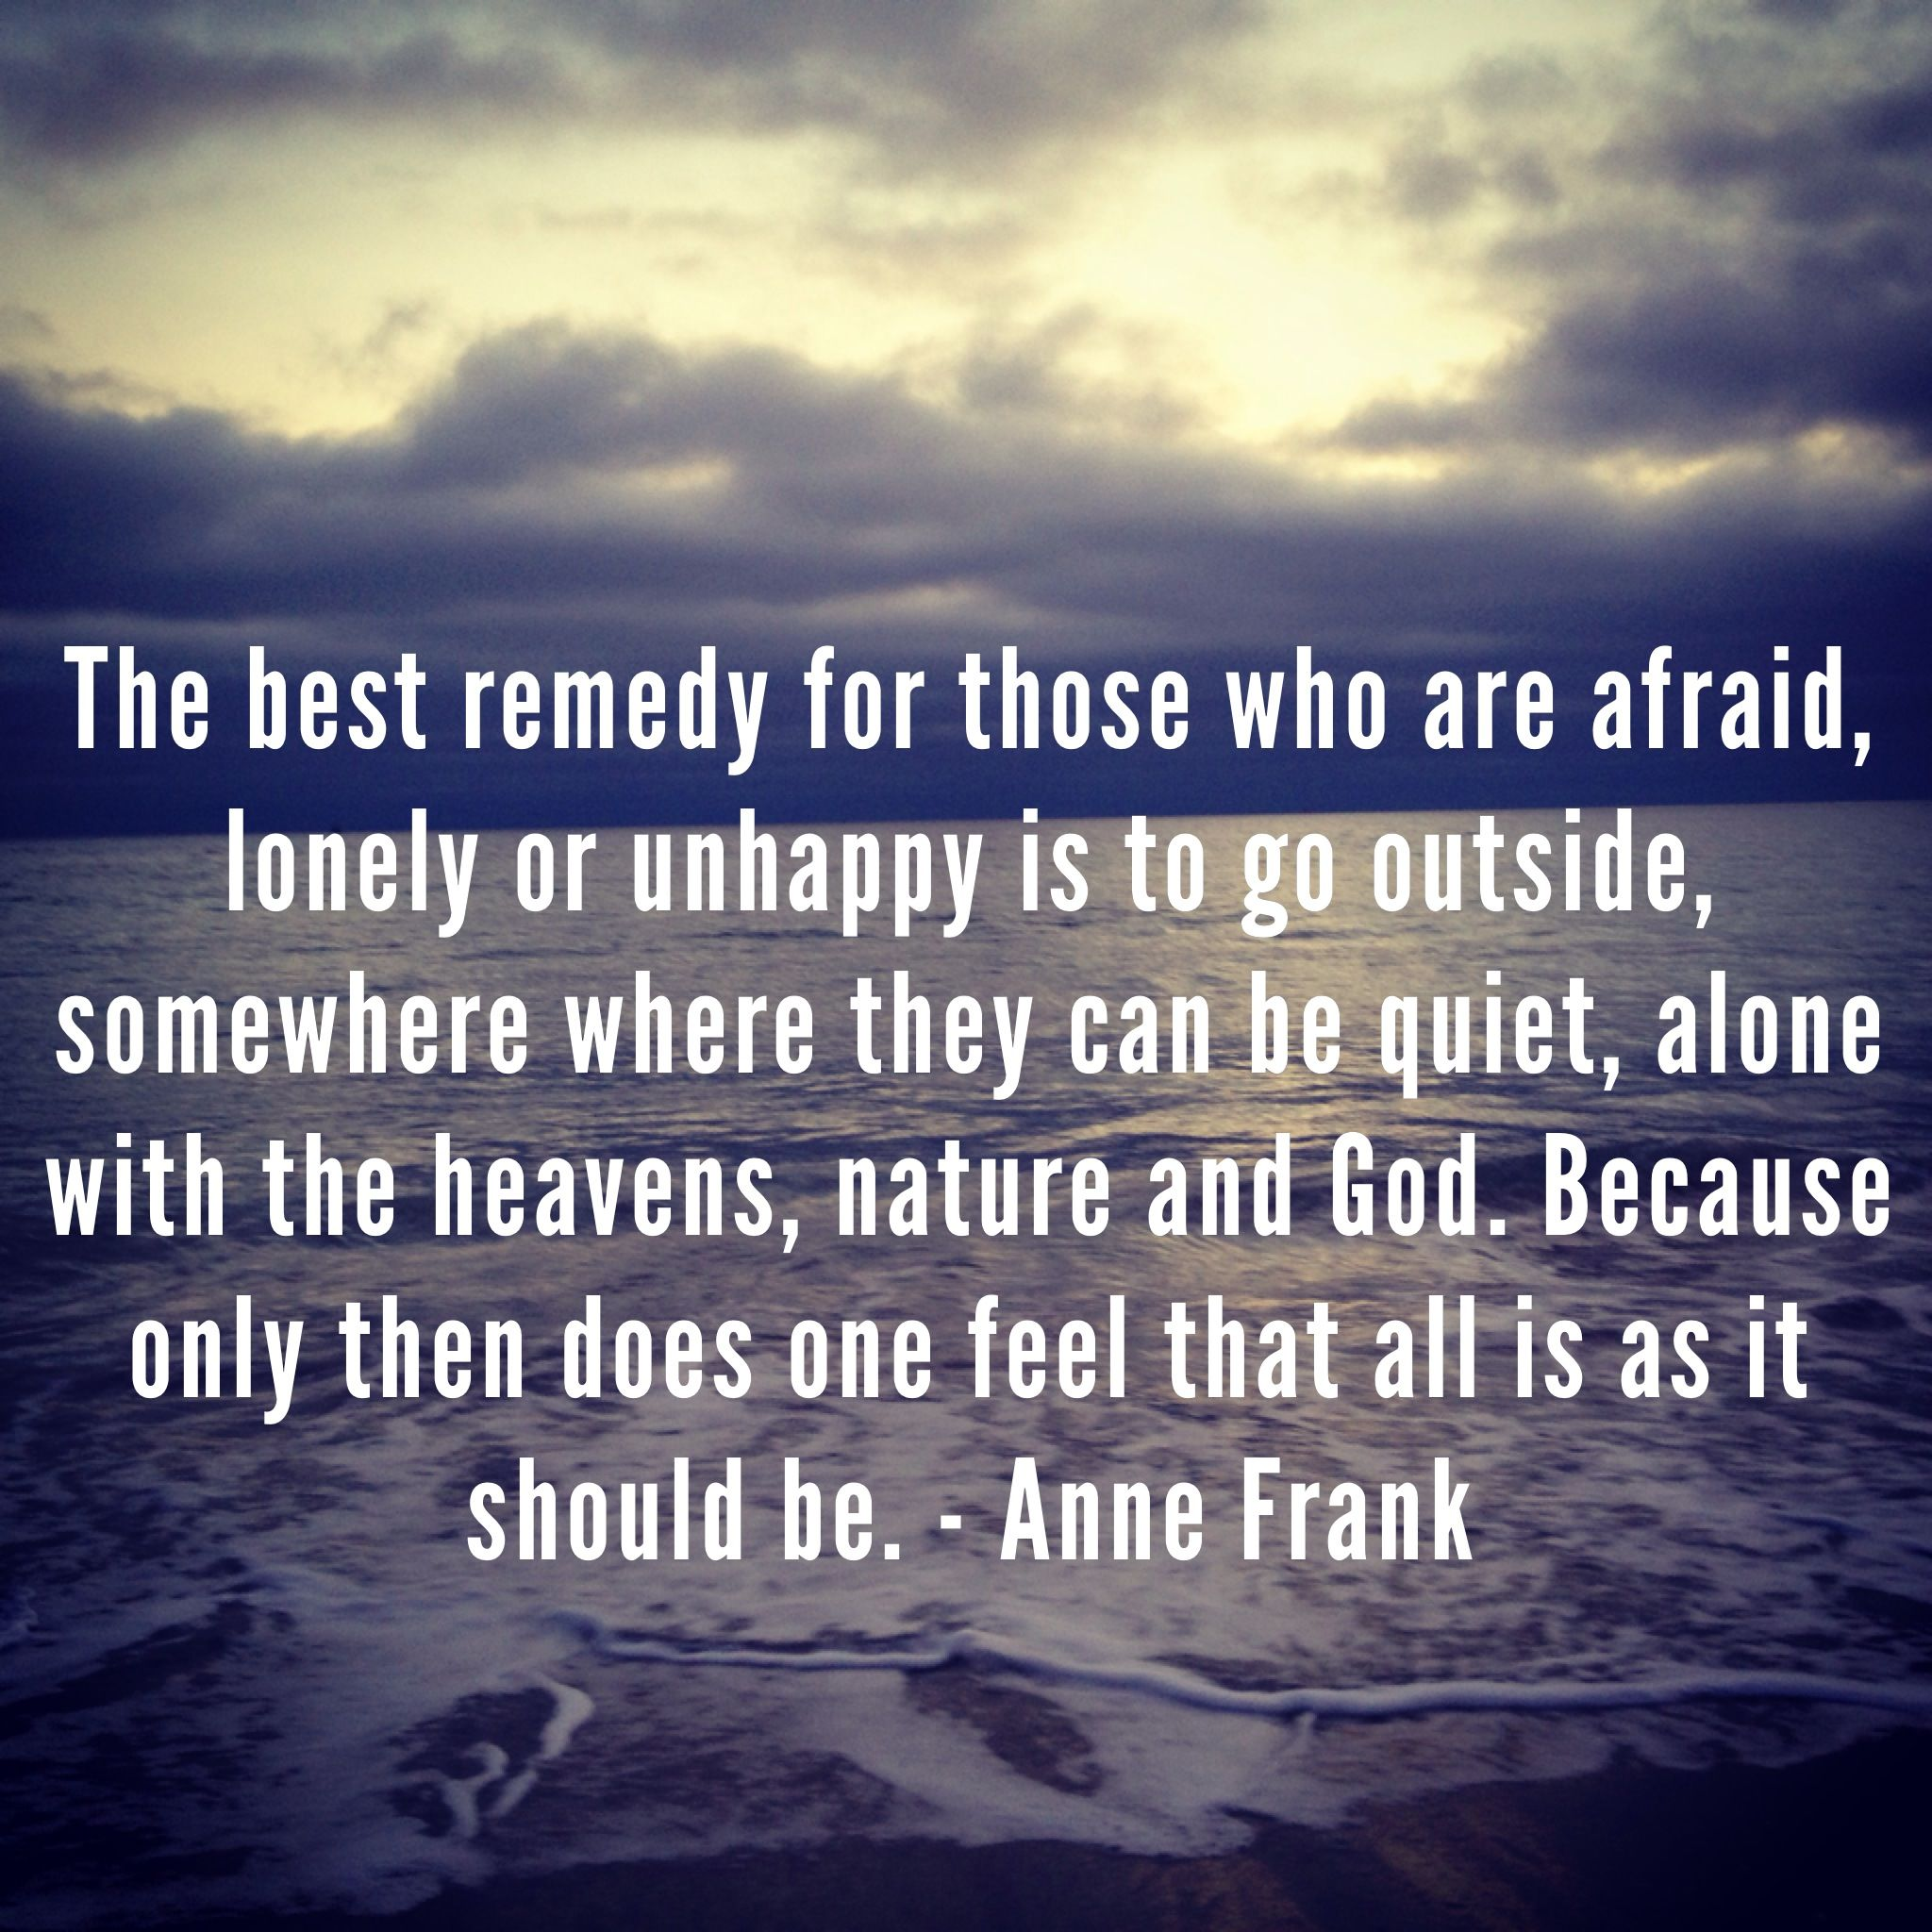 I Agree With Anne Being Alone With Nature And God It Feeds My